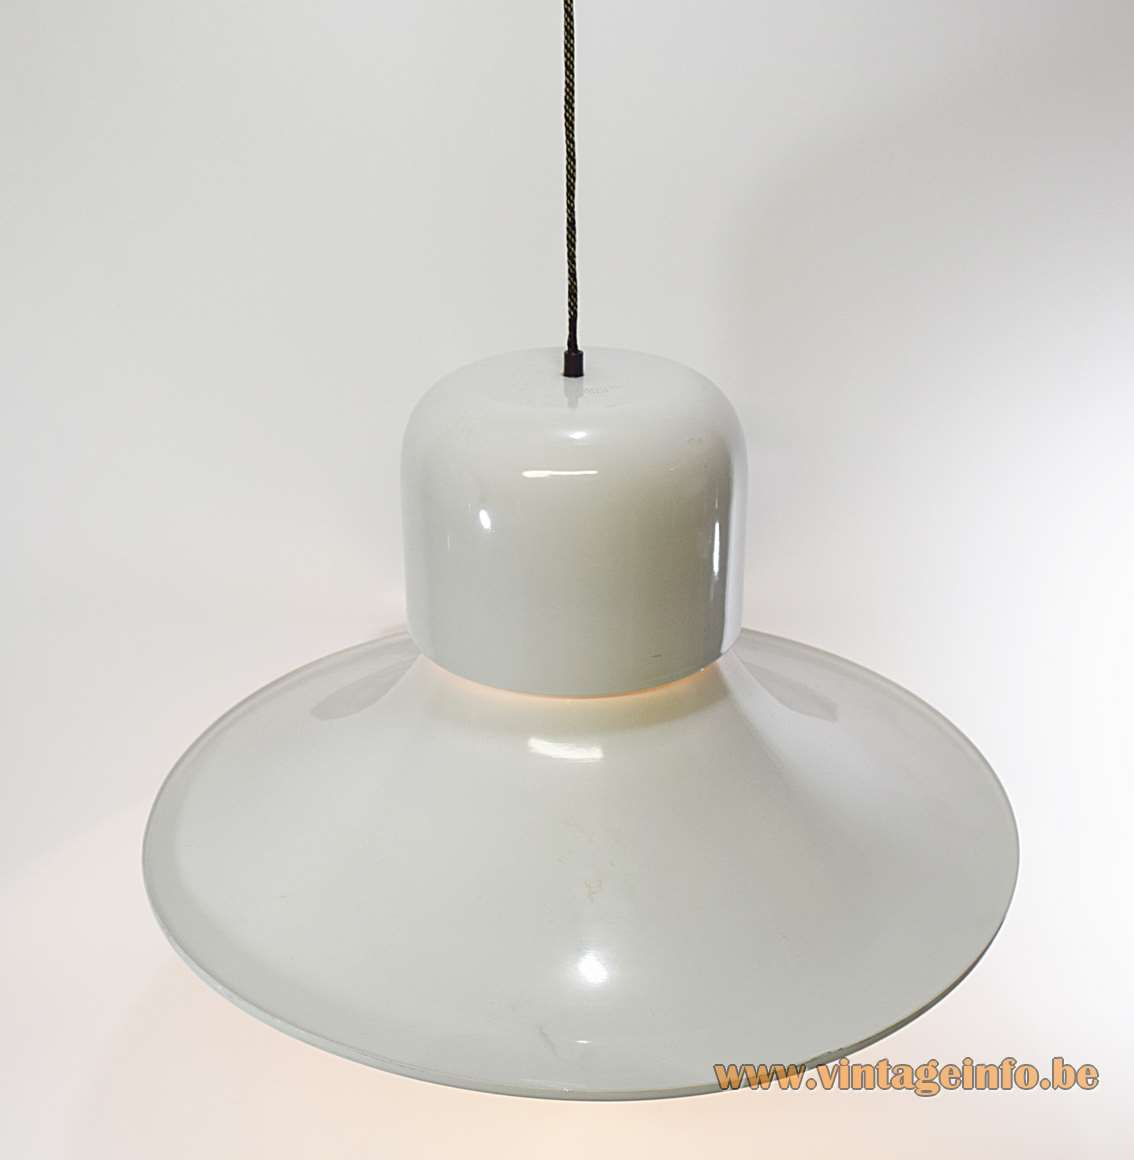 Stilnovo Campana pendant lamp big white aluminium witch hat lampshade 1970s Joe Colombo design Italy